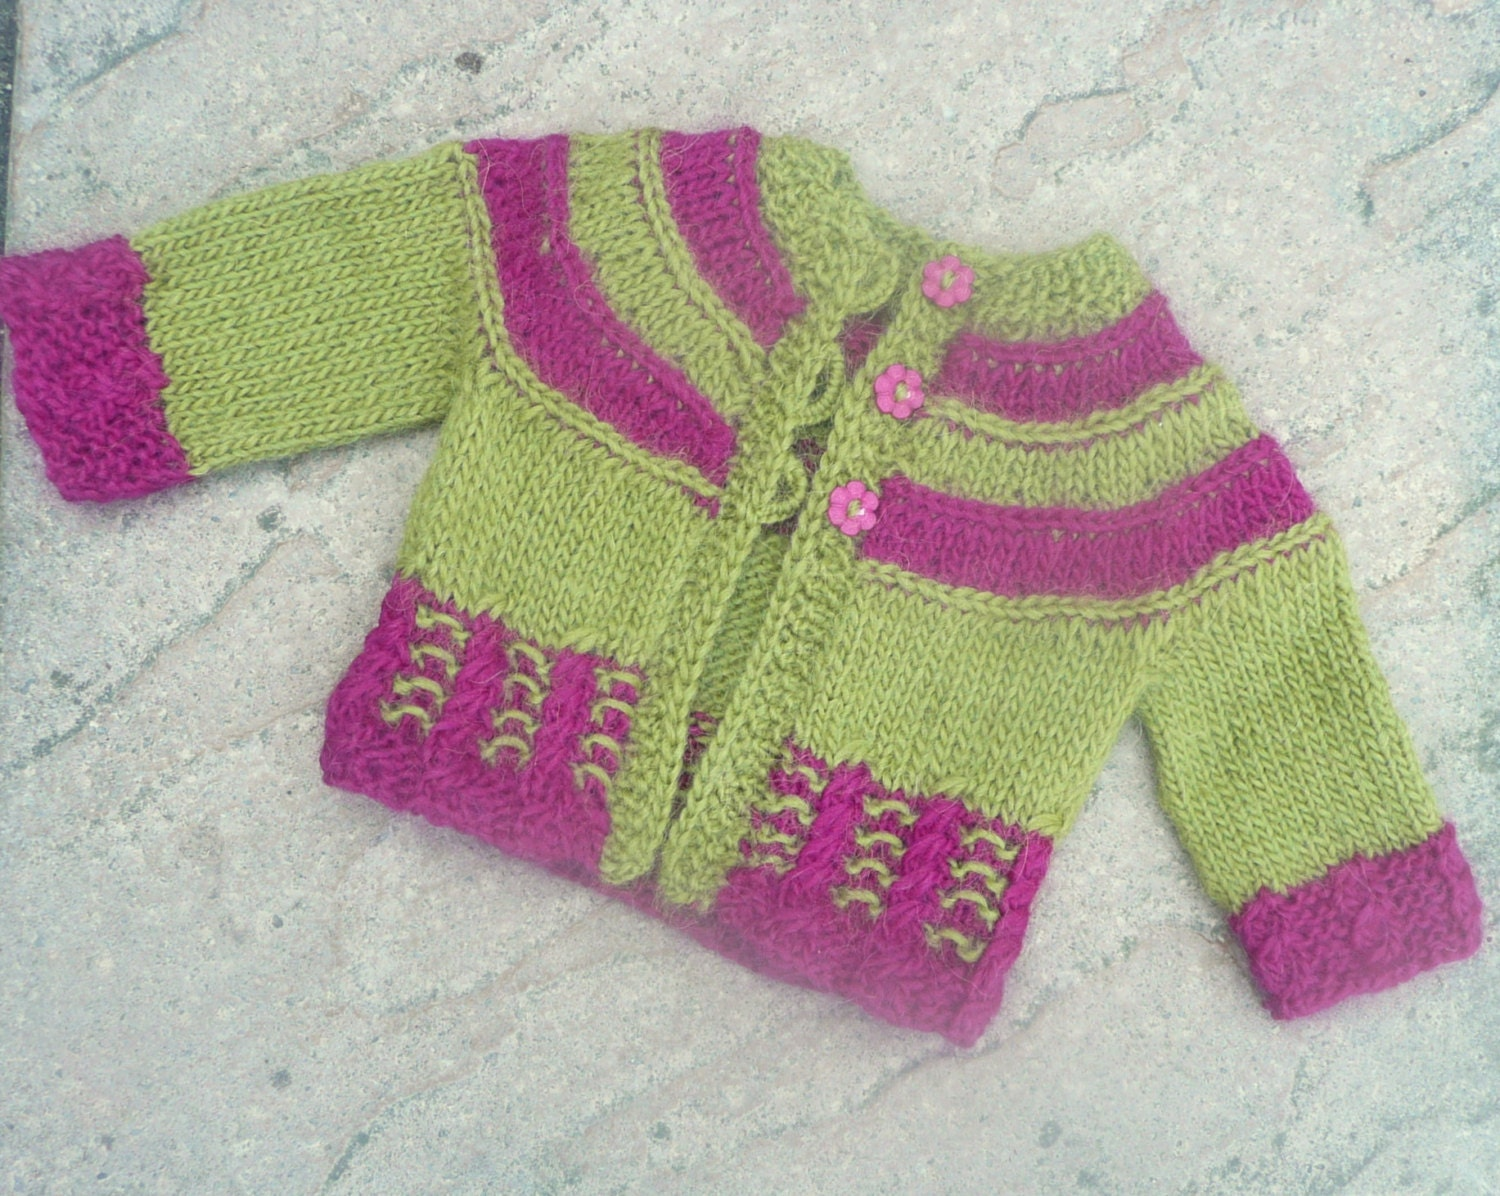 Knitting Pattern For Seamless Sweater : Knitting PATTERN Seamless Top Down Baby Girl CARDIGAN by ...